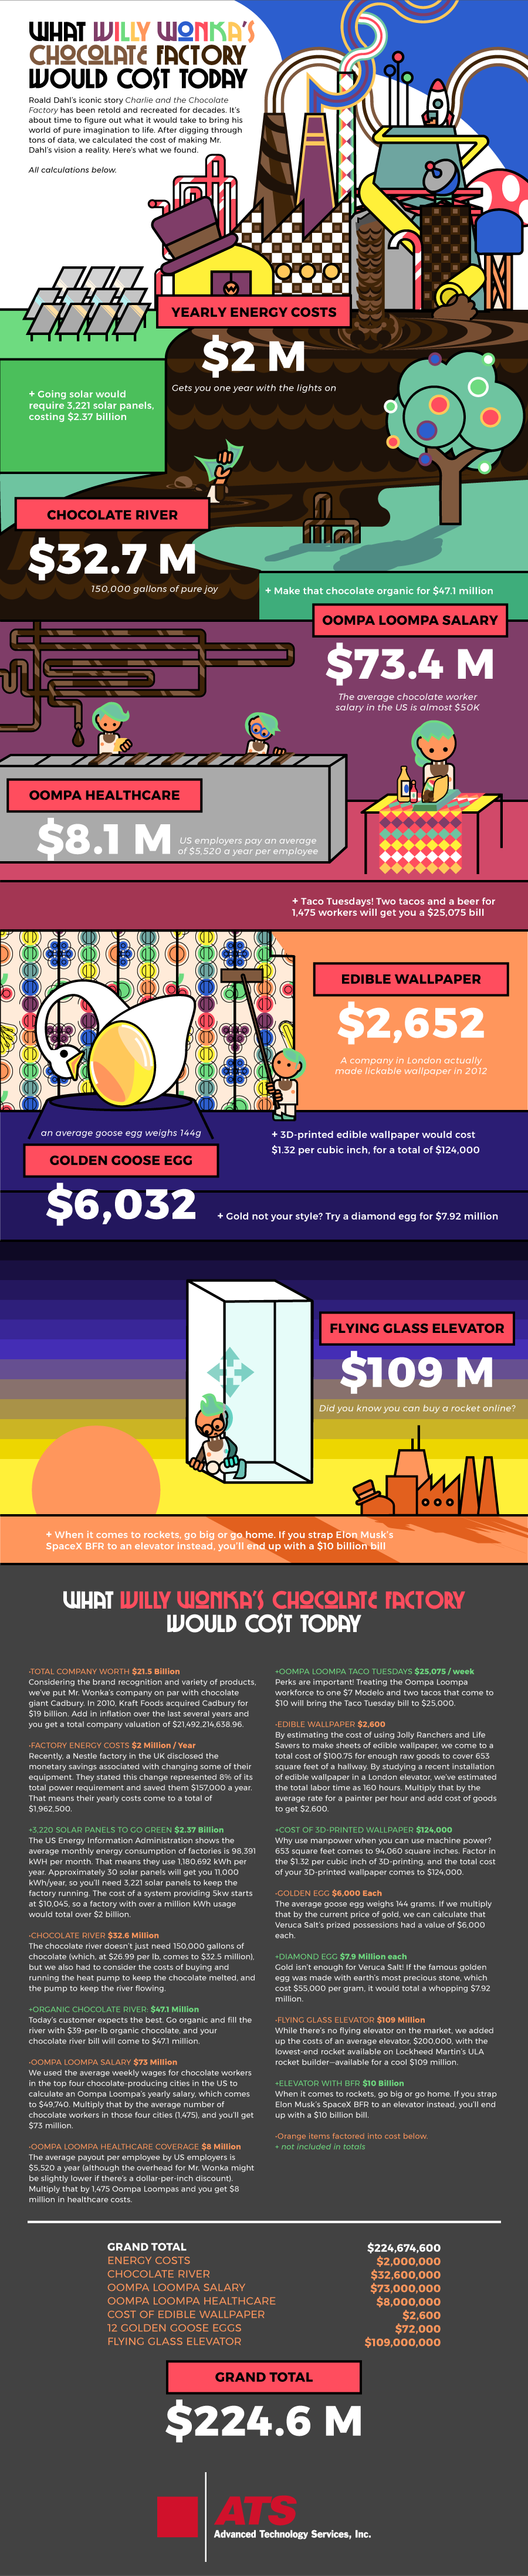 What Willy Wonka's Chocolate Factory Would Cost Today